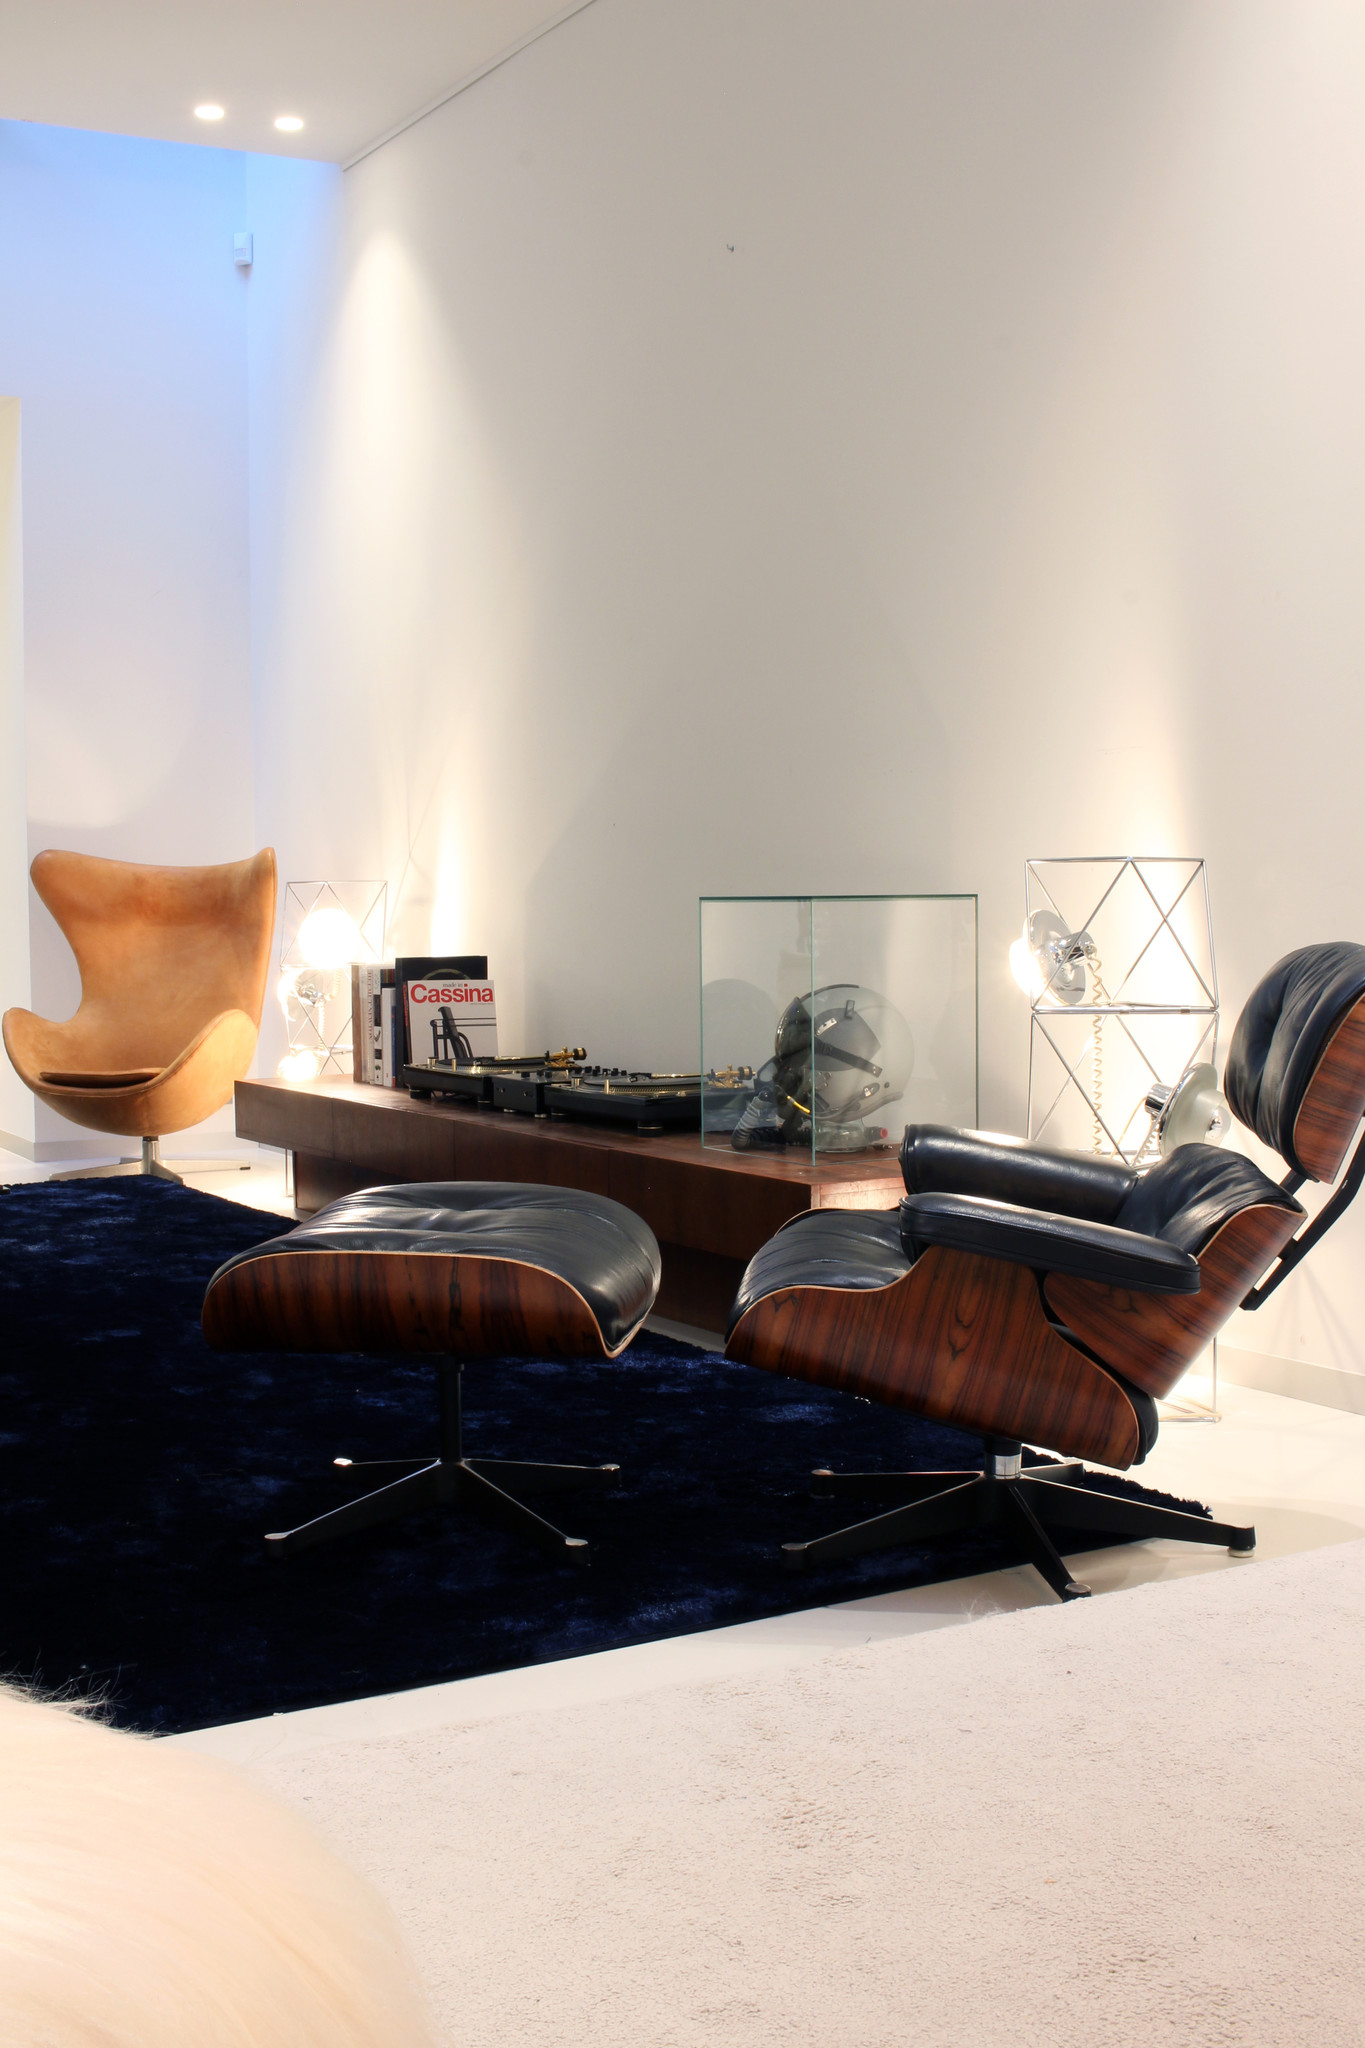 Eames Lounge chair with pouffe by Charles & Ray Eames